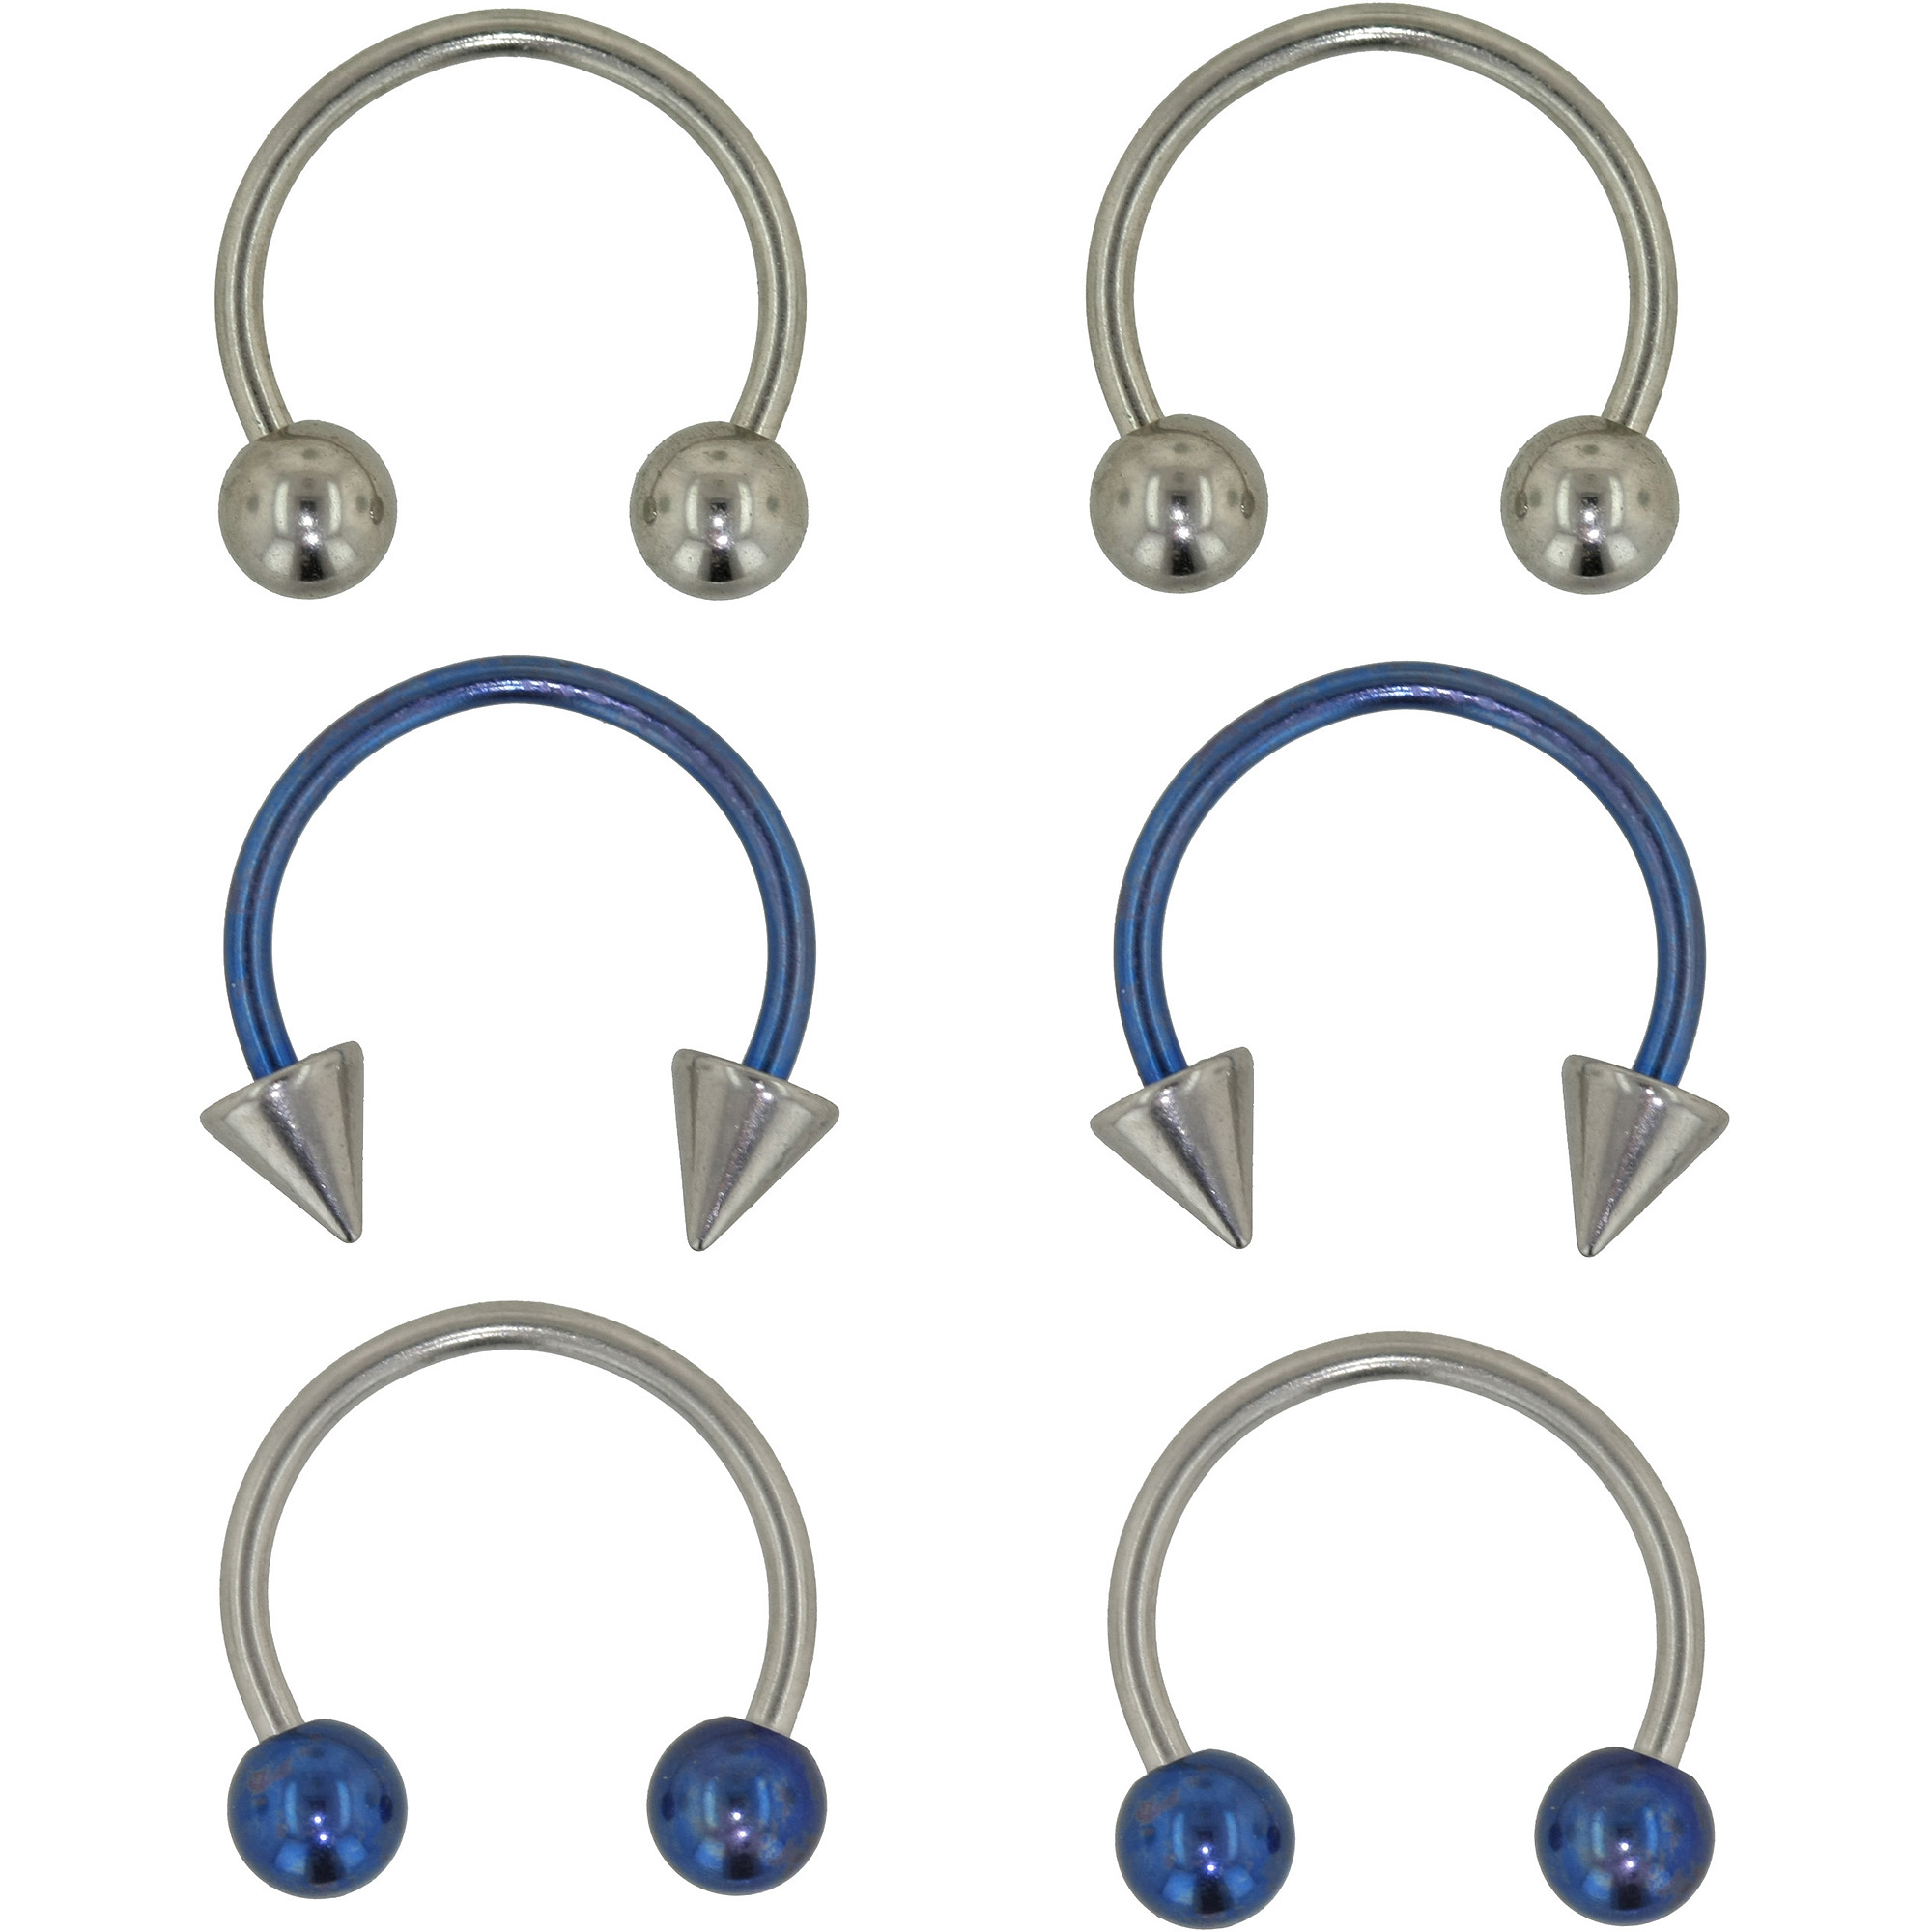 HotSilver Body Jewelry 3 Pack - 20G Surgical Steel Horseshoes - Blue and Silver